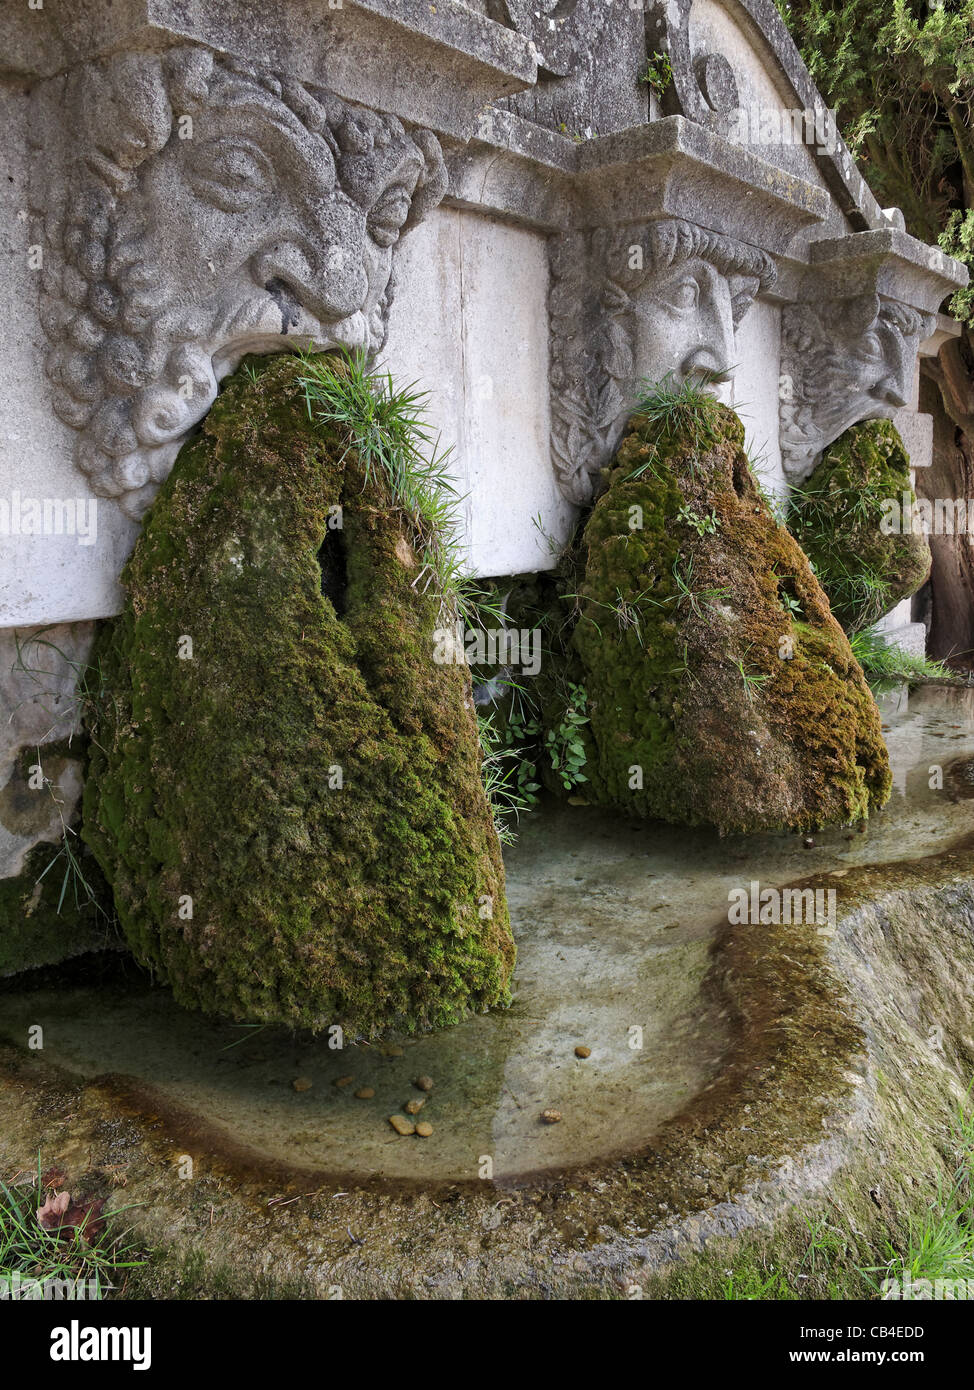 chaussures de sport style populaire achat authentique Fountain Lourmarin Provence France Photos & Fountain ...